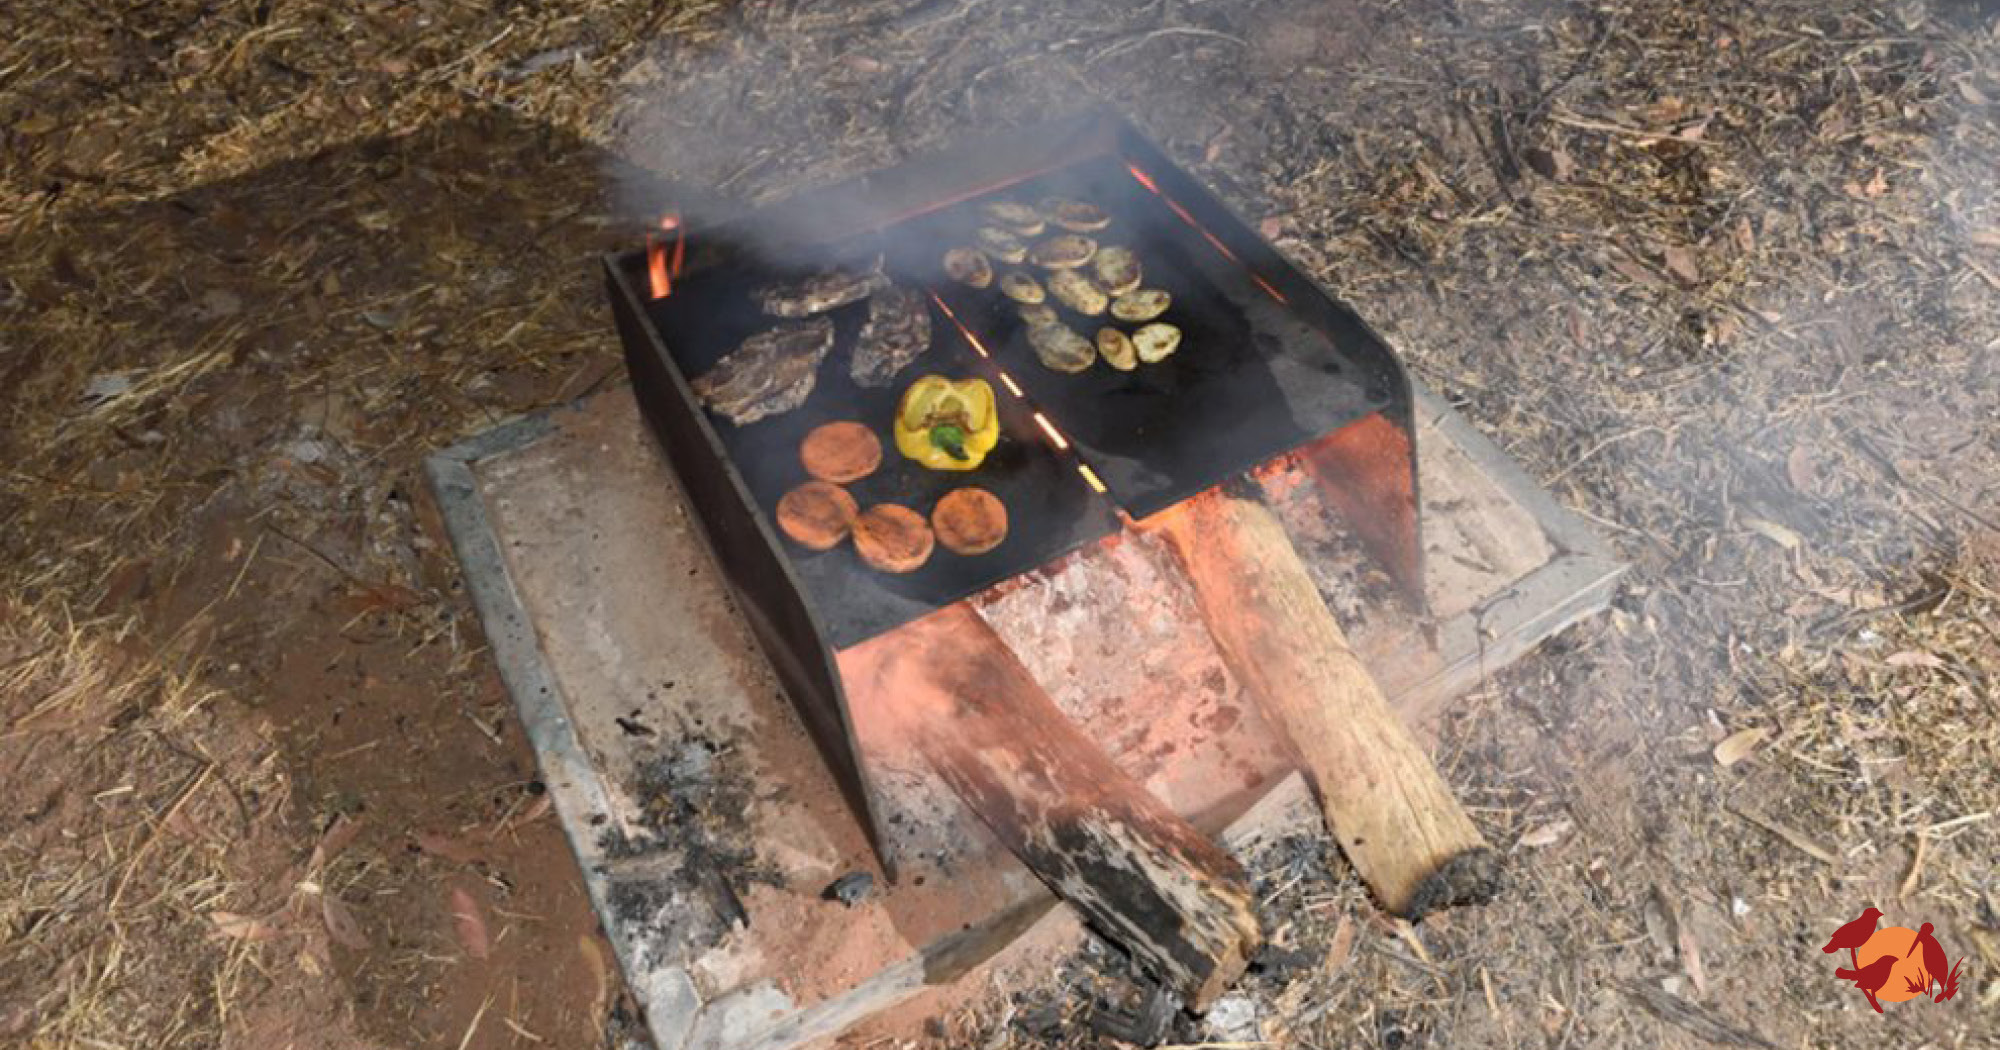 Is Your Caravan Barbecue Legal?